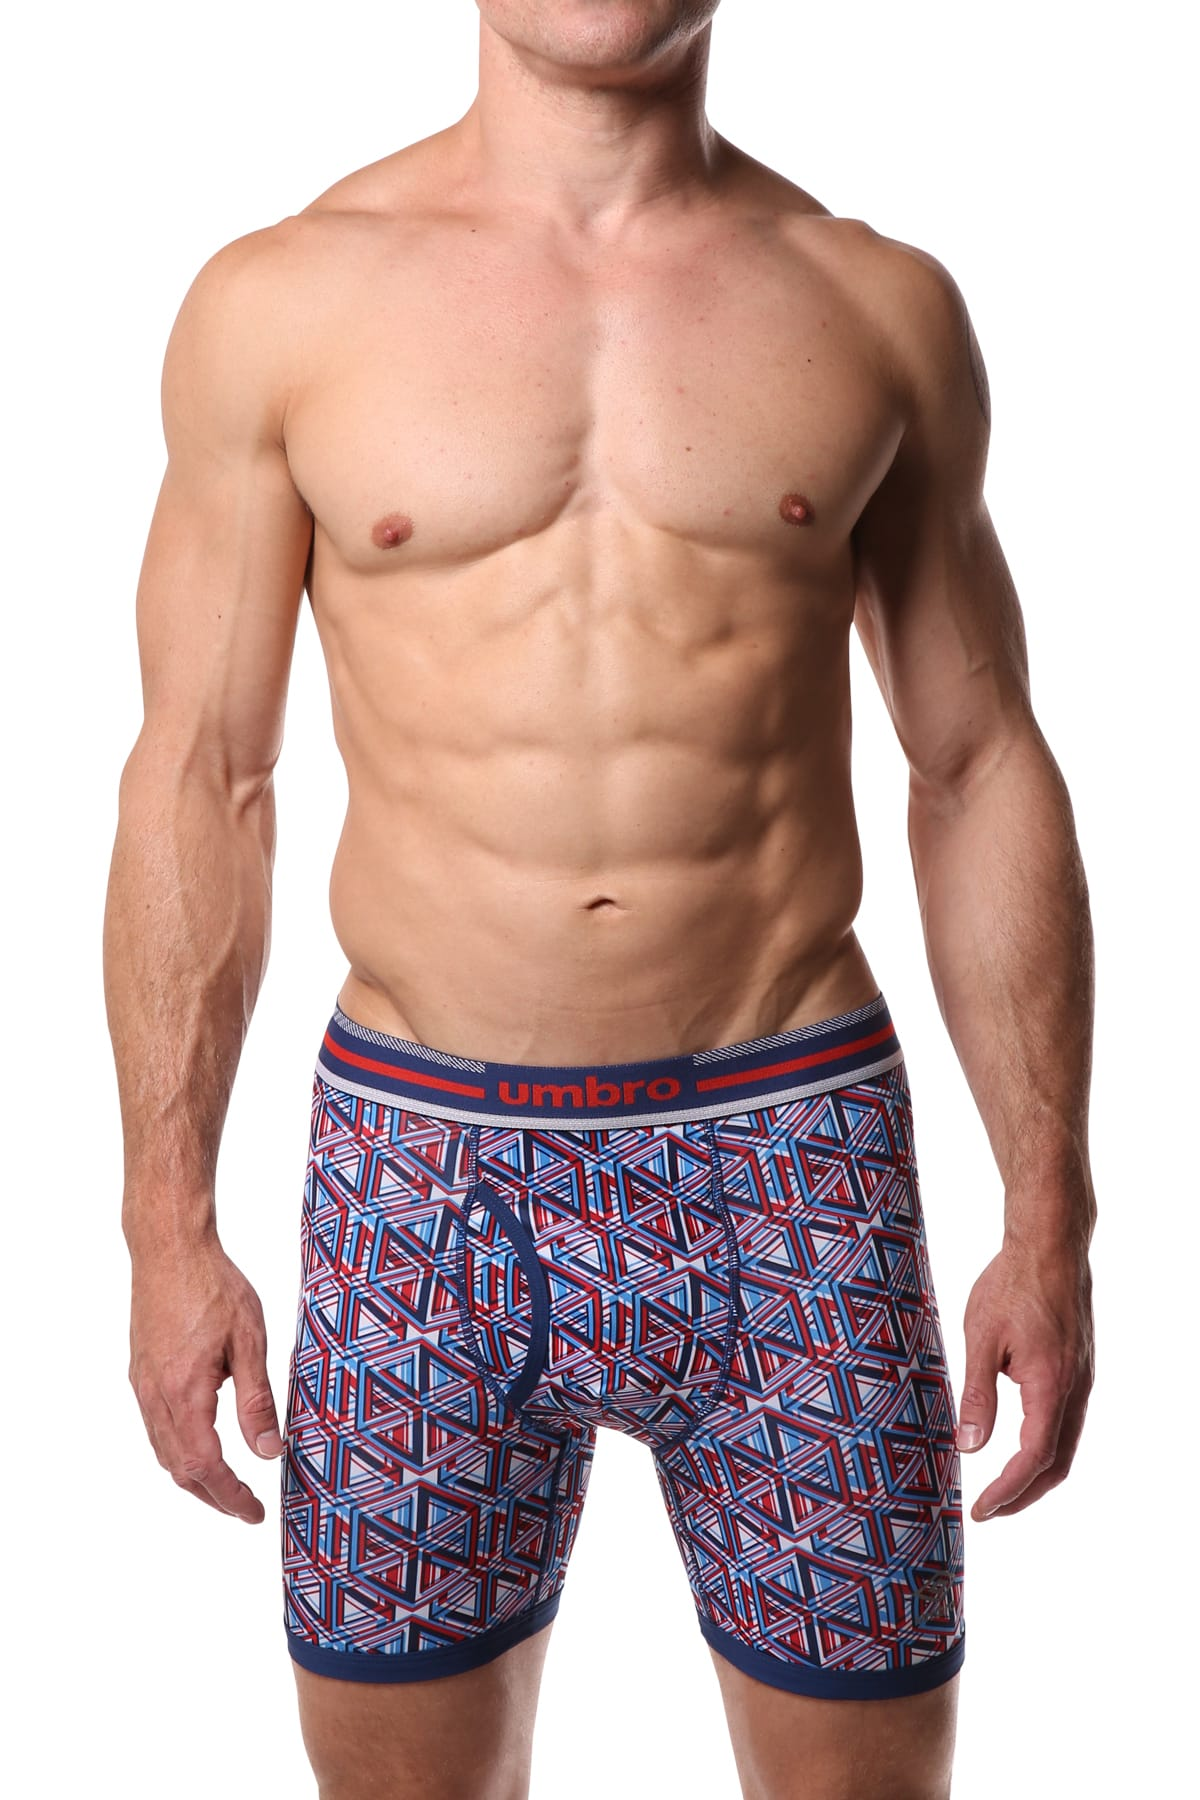 Umbro Red/White/Blue Geometric Performance Boxer Brief